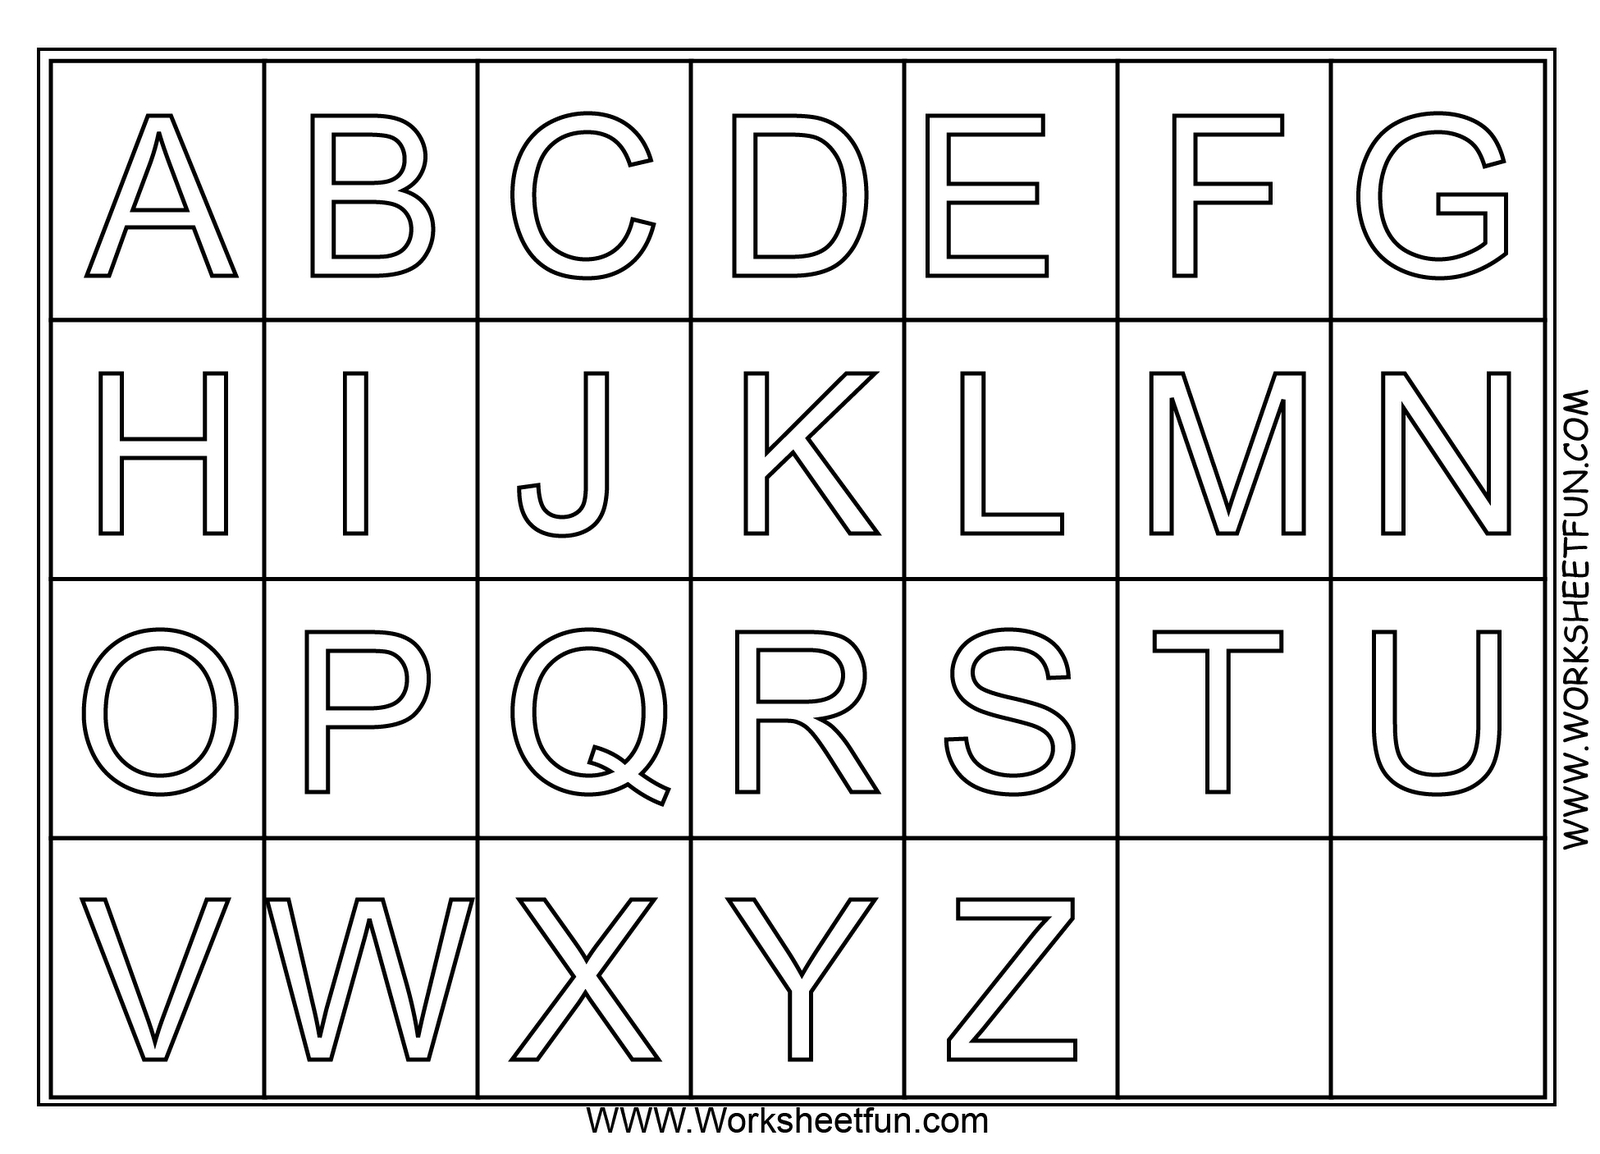 A Z Alphabet Coloring Pages Download And Print For Free | Pre K - Printable Alphabet Letters Free Download